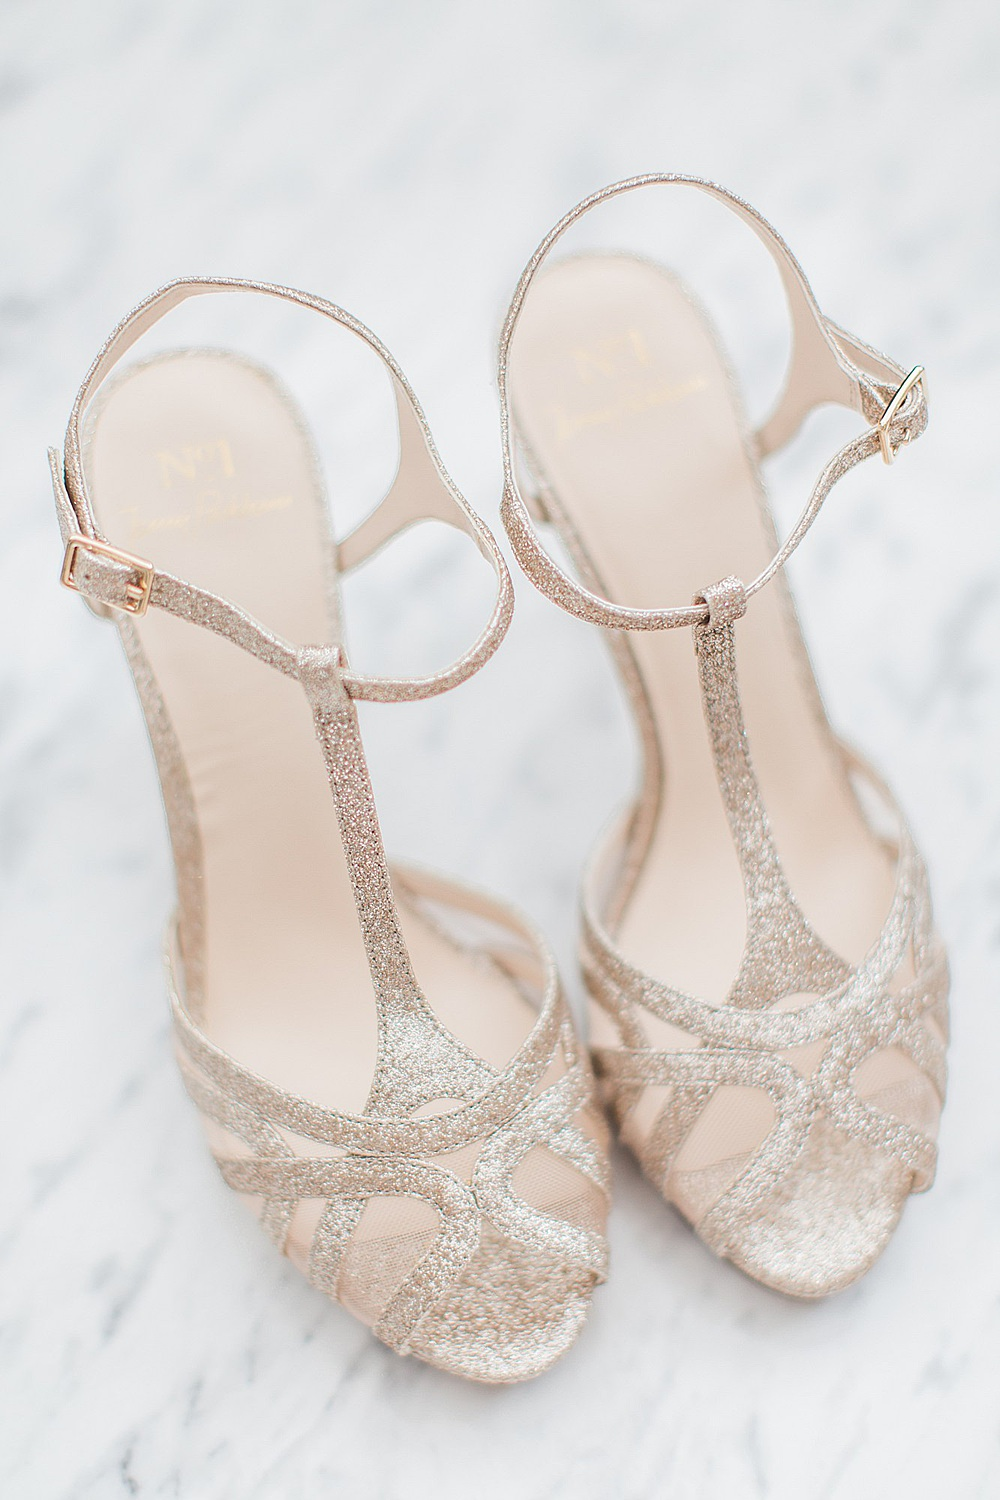 Bride Bridal Shoes Heels Gold Strappy Chiltern Open Air Museum Wedding Terri & Lori Fine Art Photography